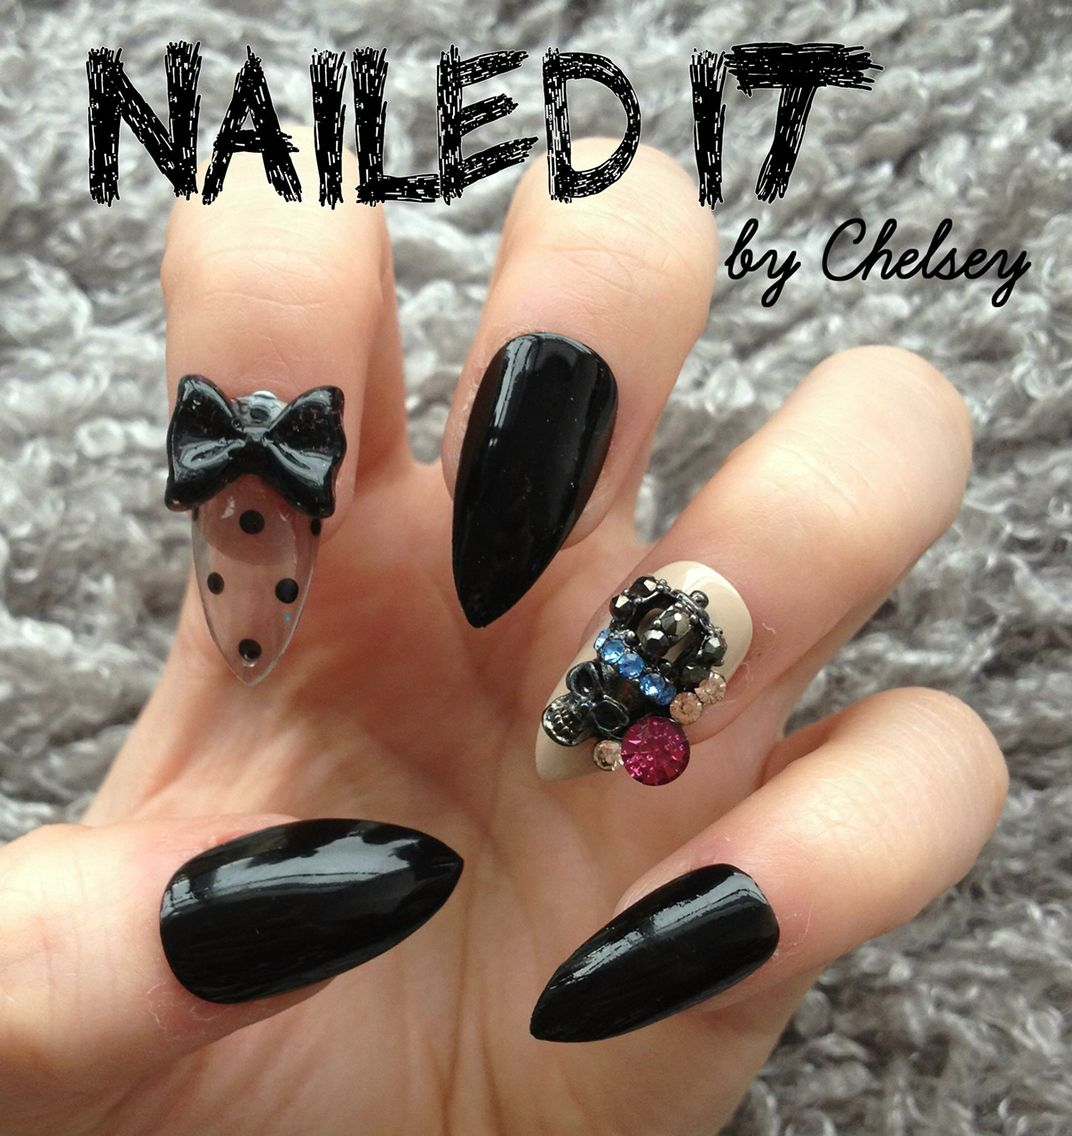 Sheer Polkadot Skull nails! On sale now, see link in bio ☺️